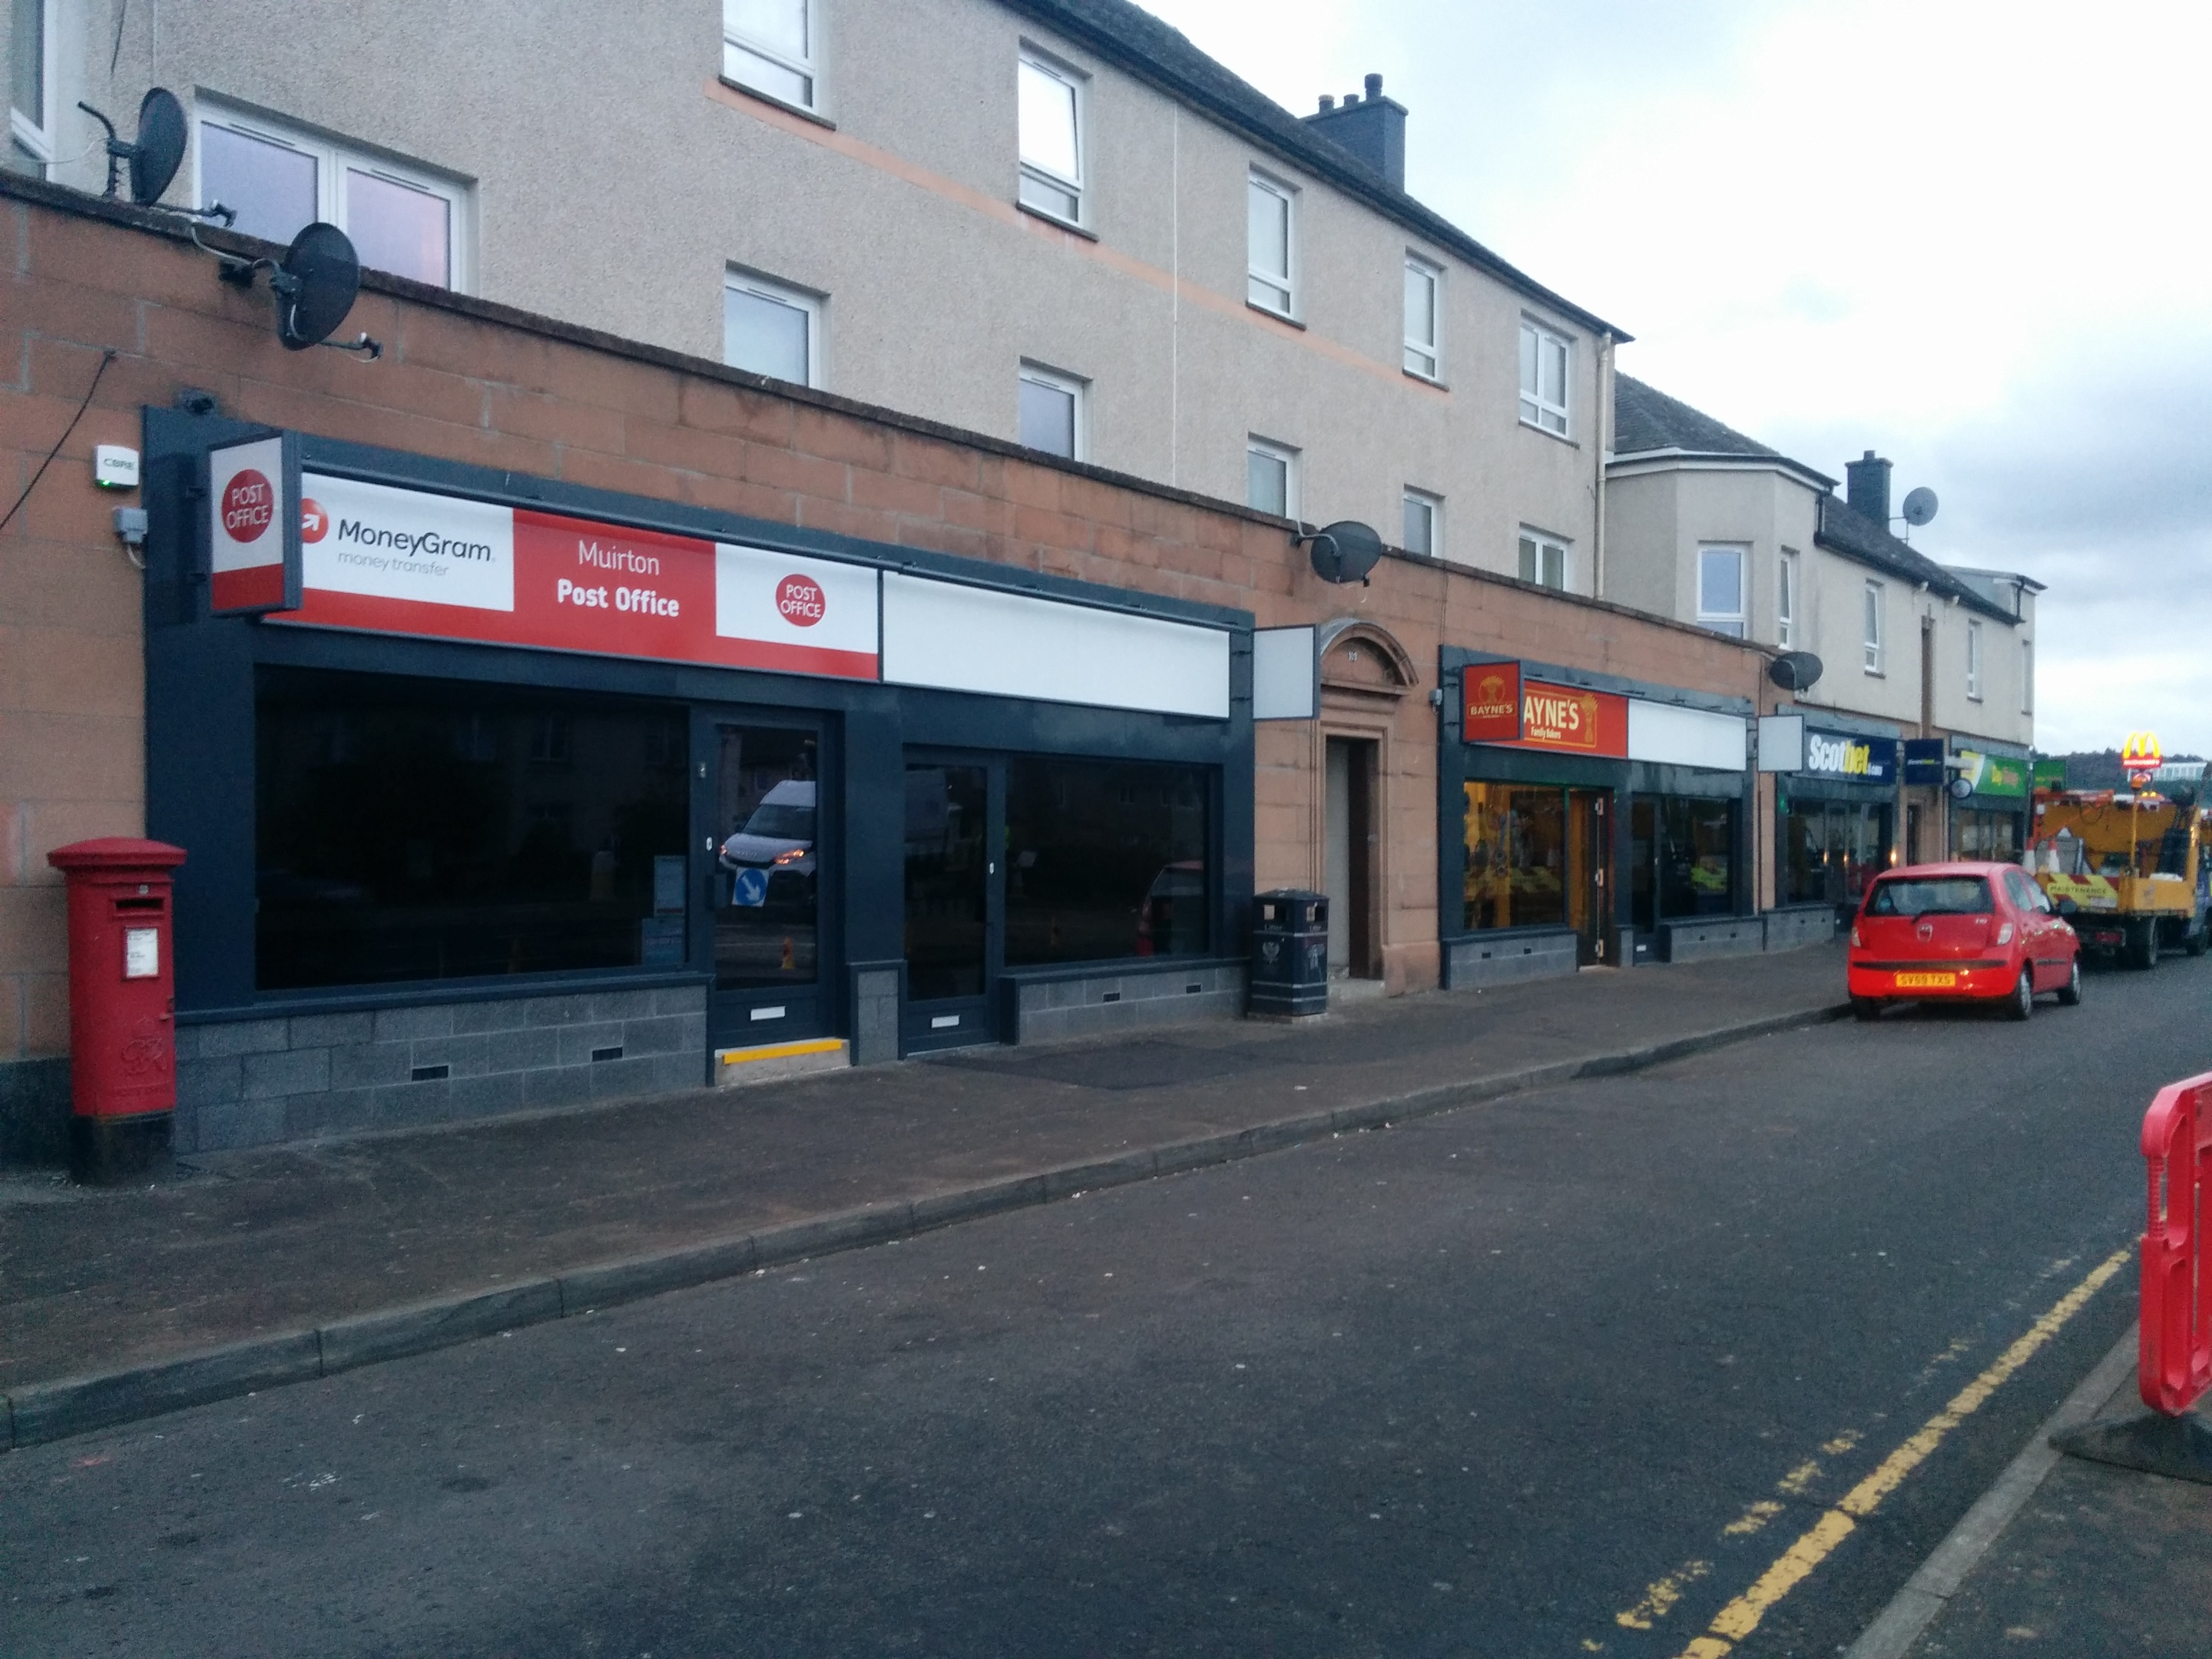 The shops in Muirton, Perth, have had their frontage upgraded.